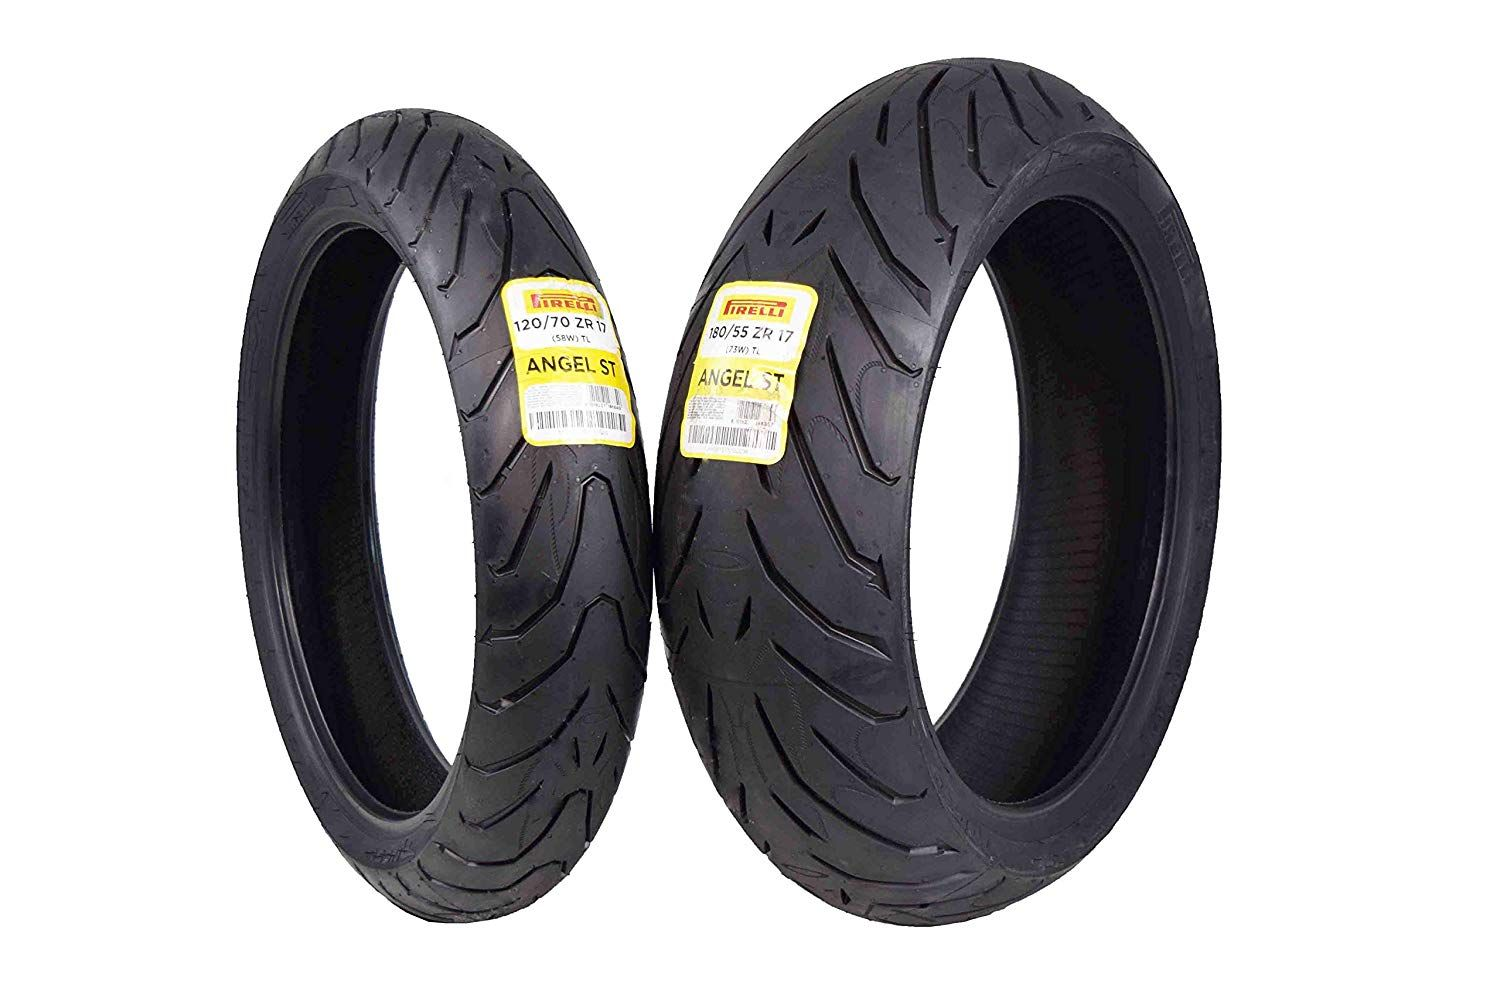 Pirelli Angel St Front And Rear Street Sport Touring Motorcycle Tires 1x Front 120 70zr17 1x Rear 180 55zr17 You Ca Motorcycle Tires Sport Touring Pirelli